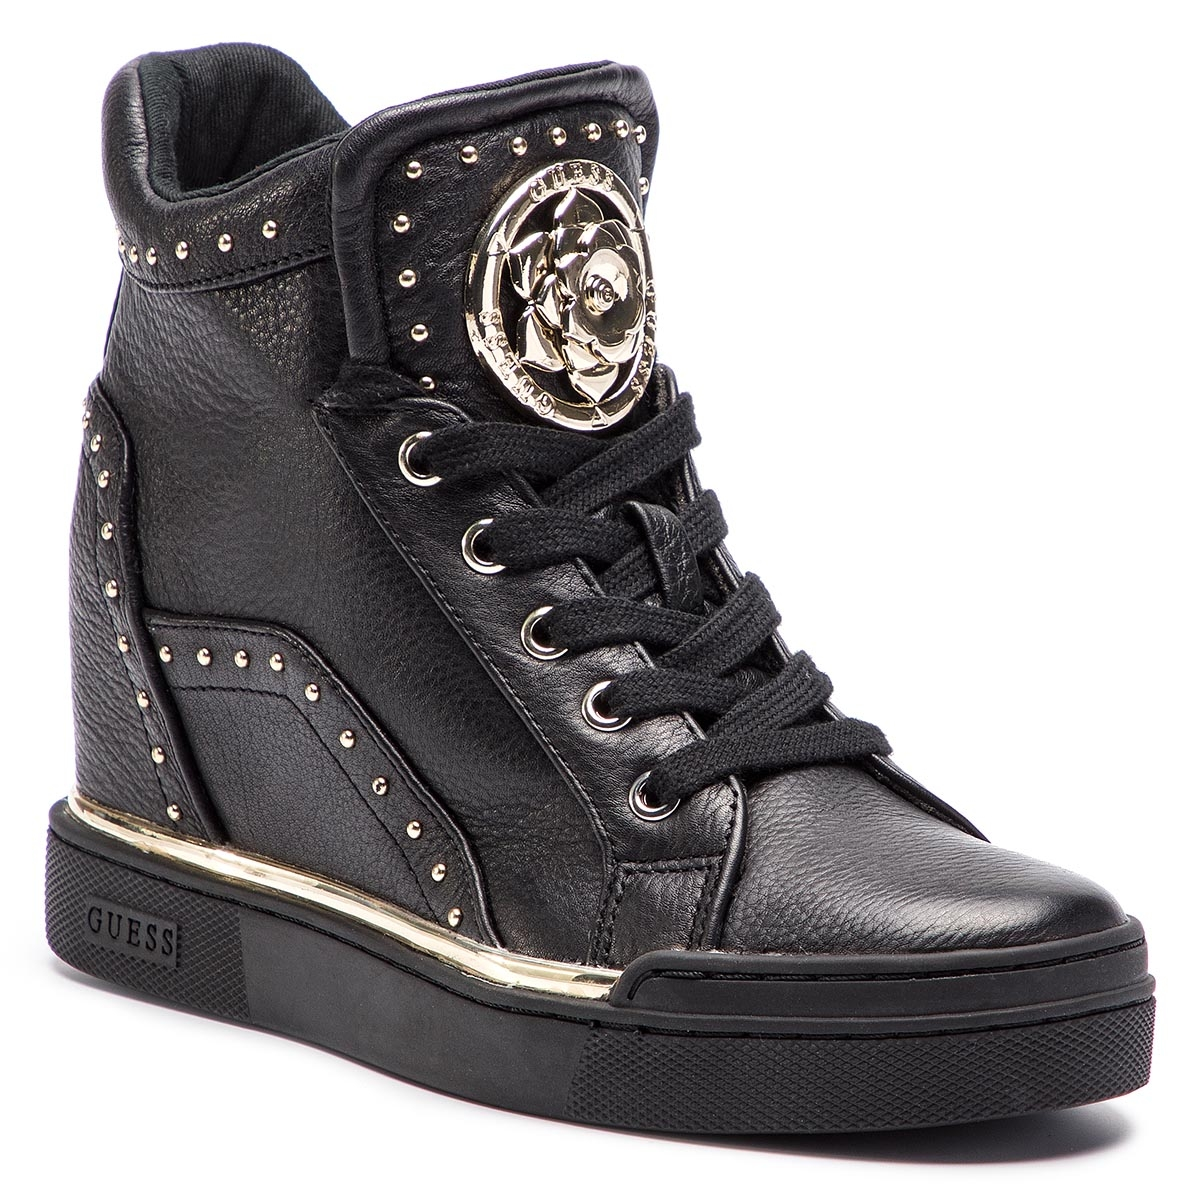 Sneakers GUESS - FL5FR2 LEA12 BLACK